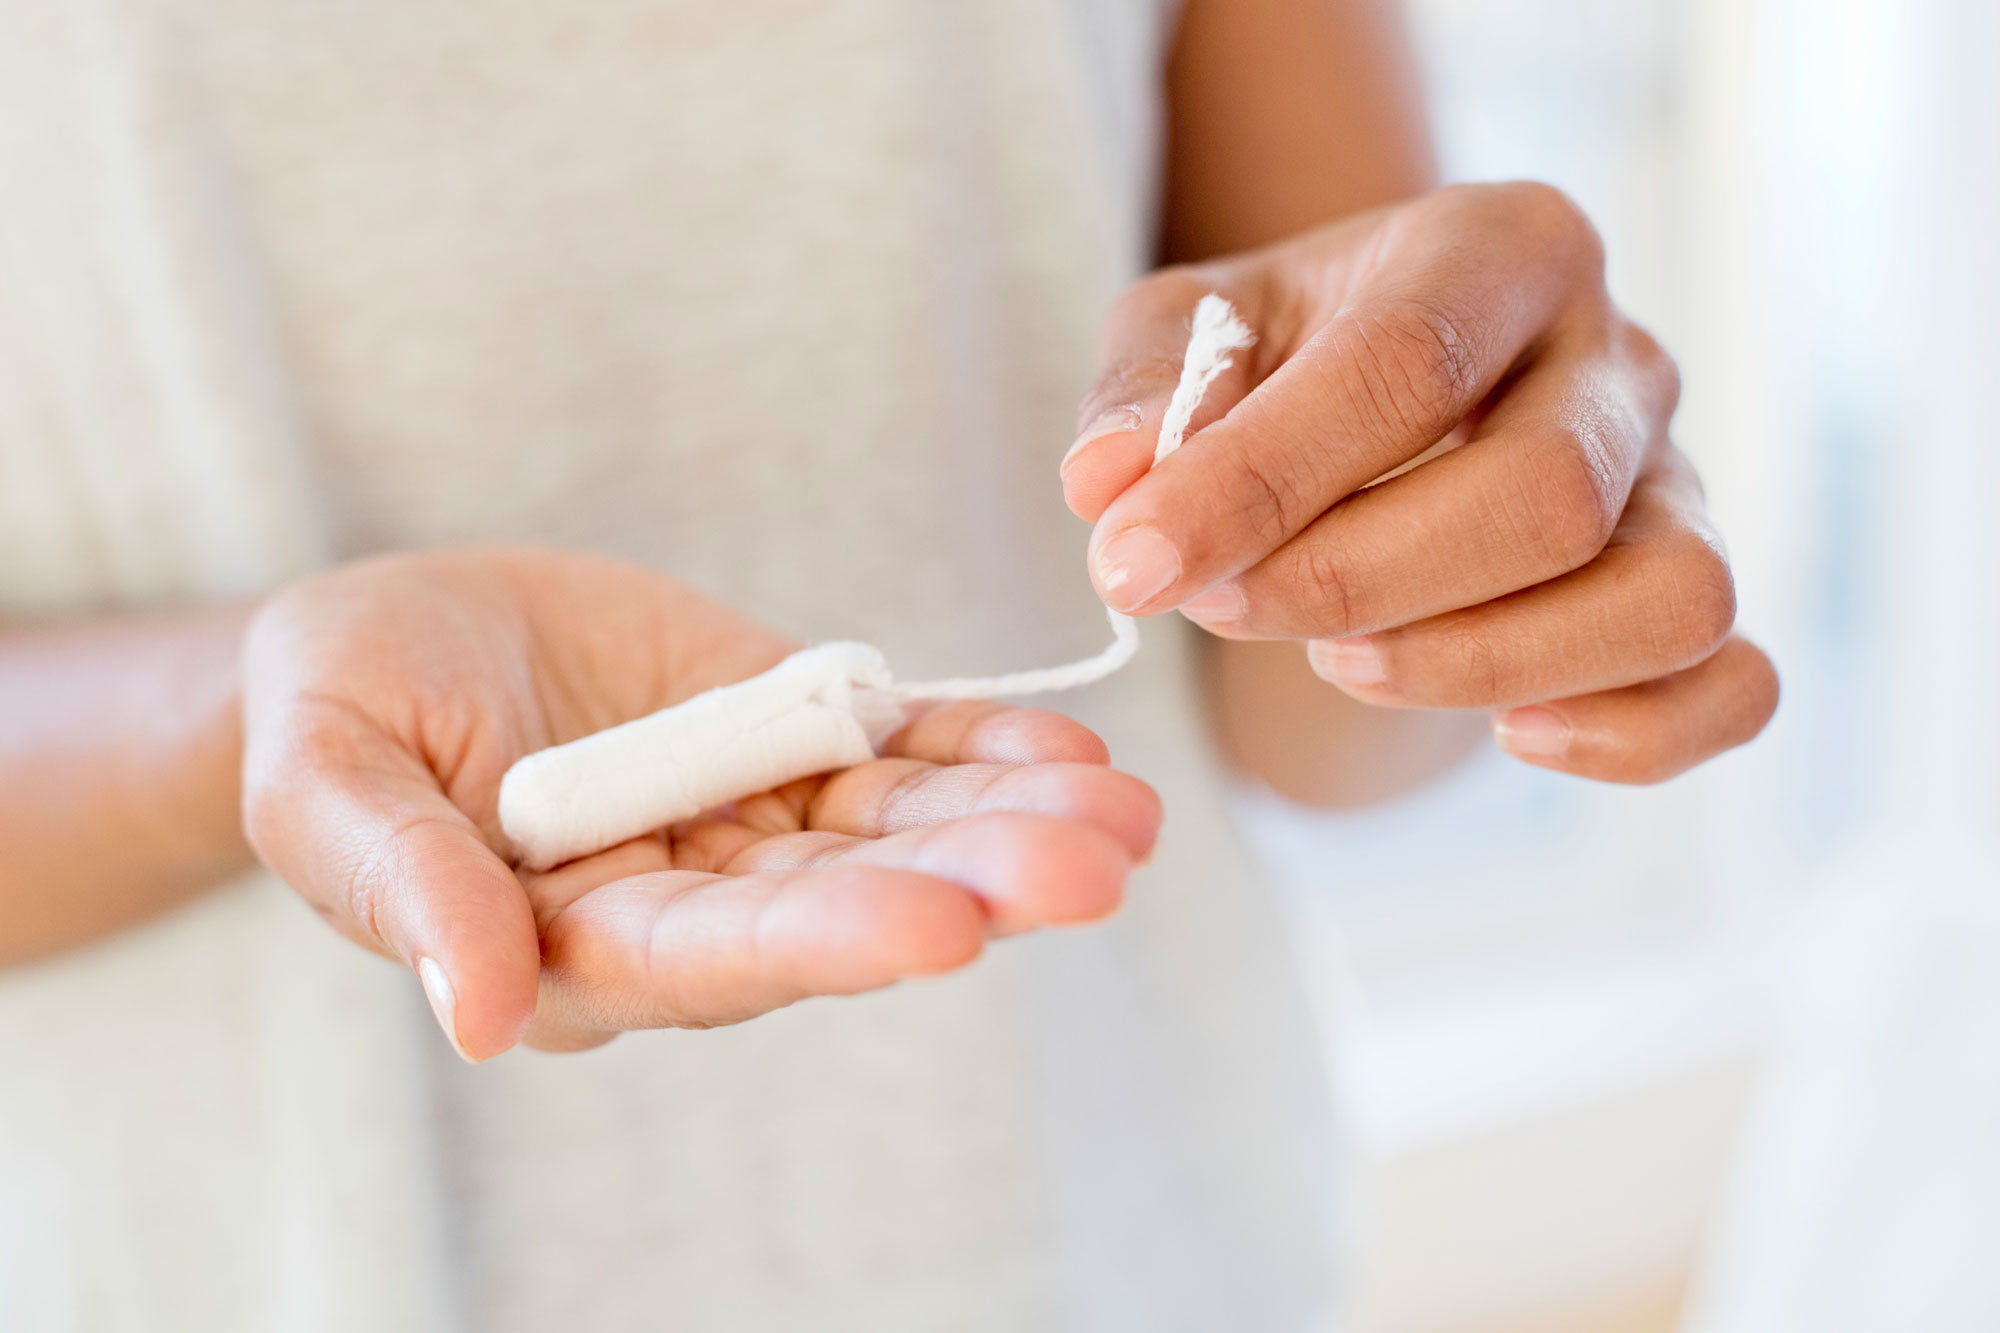 How Long Is Too Long to Leave a Tampon In?